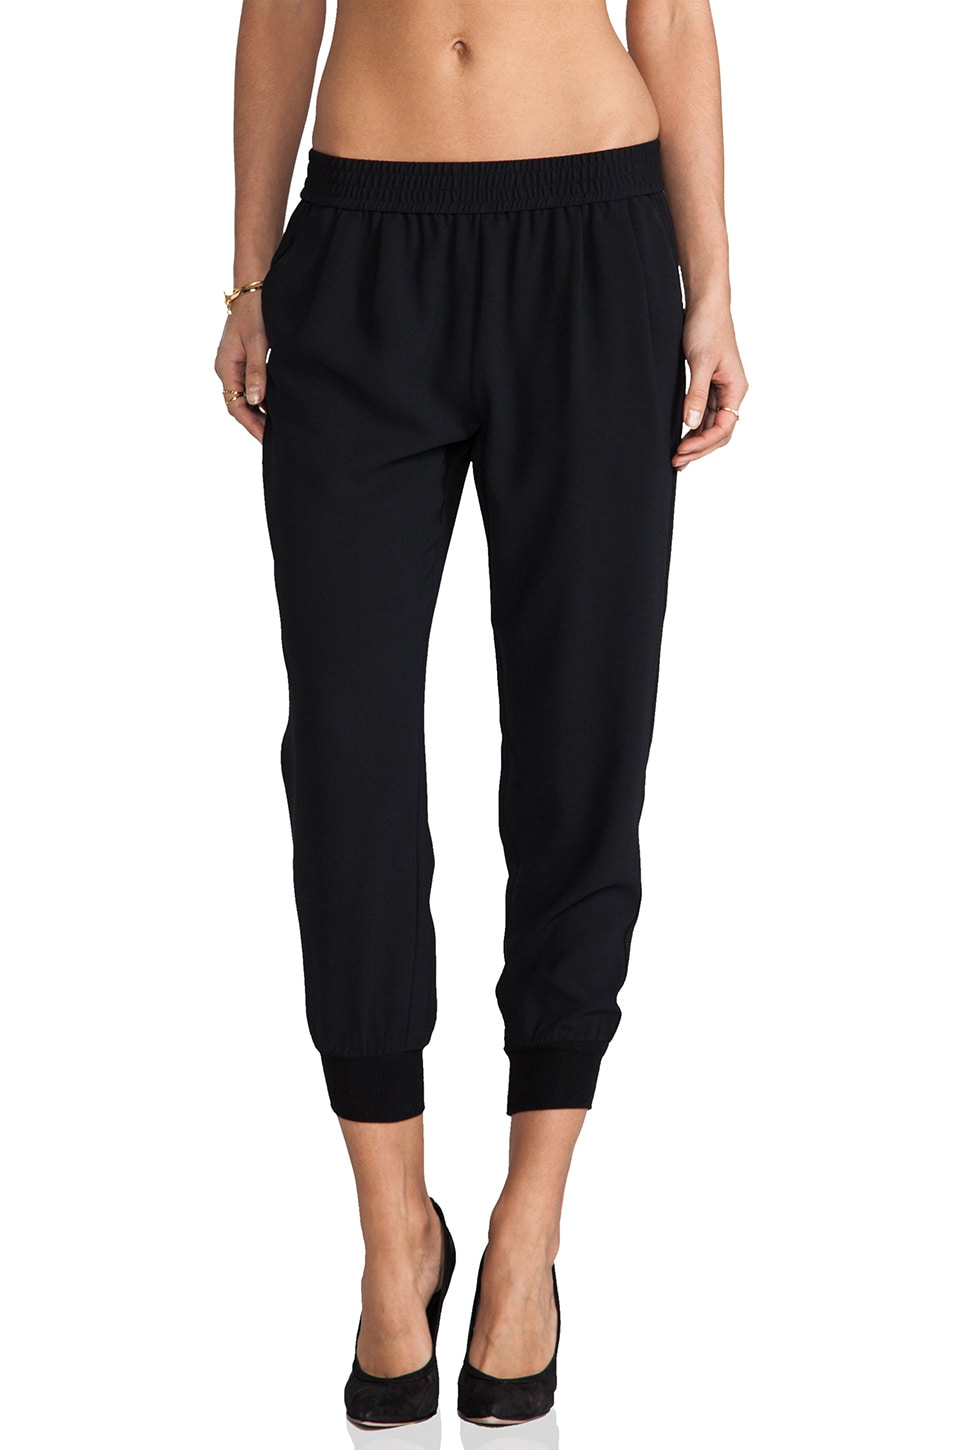 Joie Mariner Cropped Pant in Black